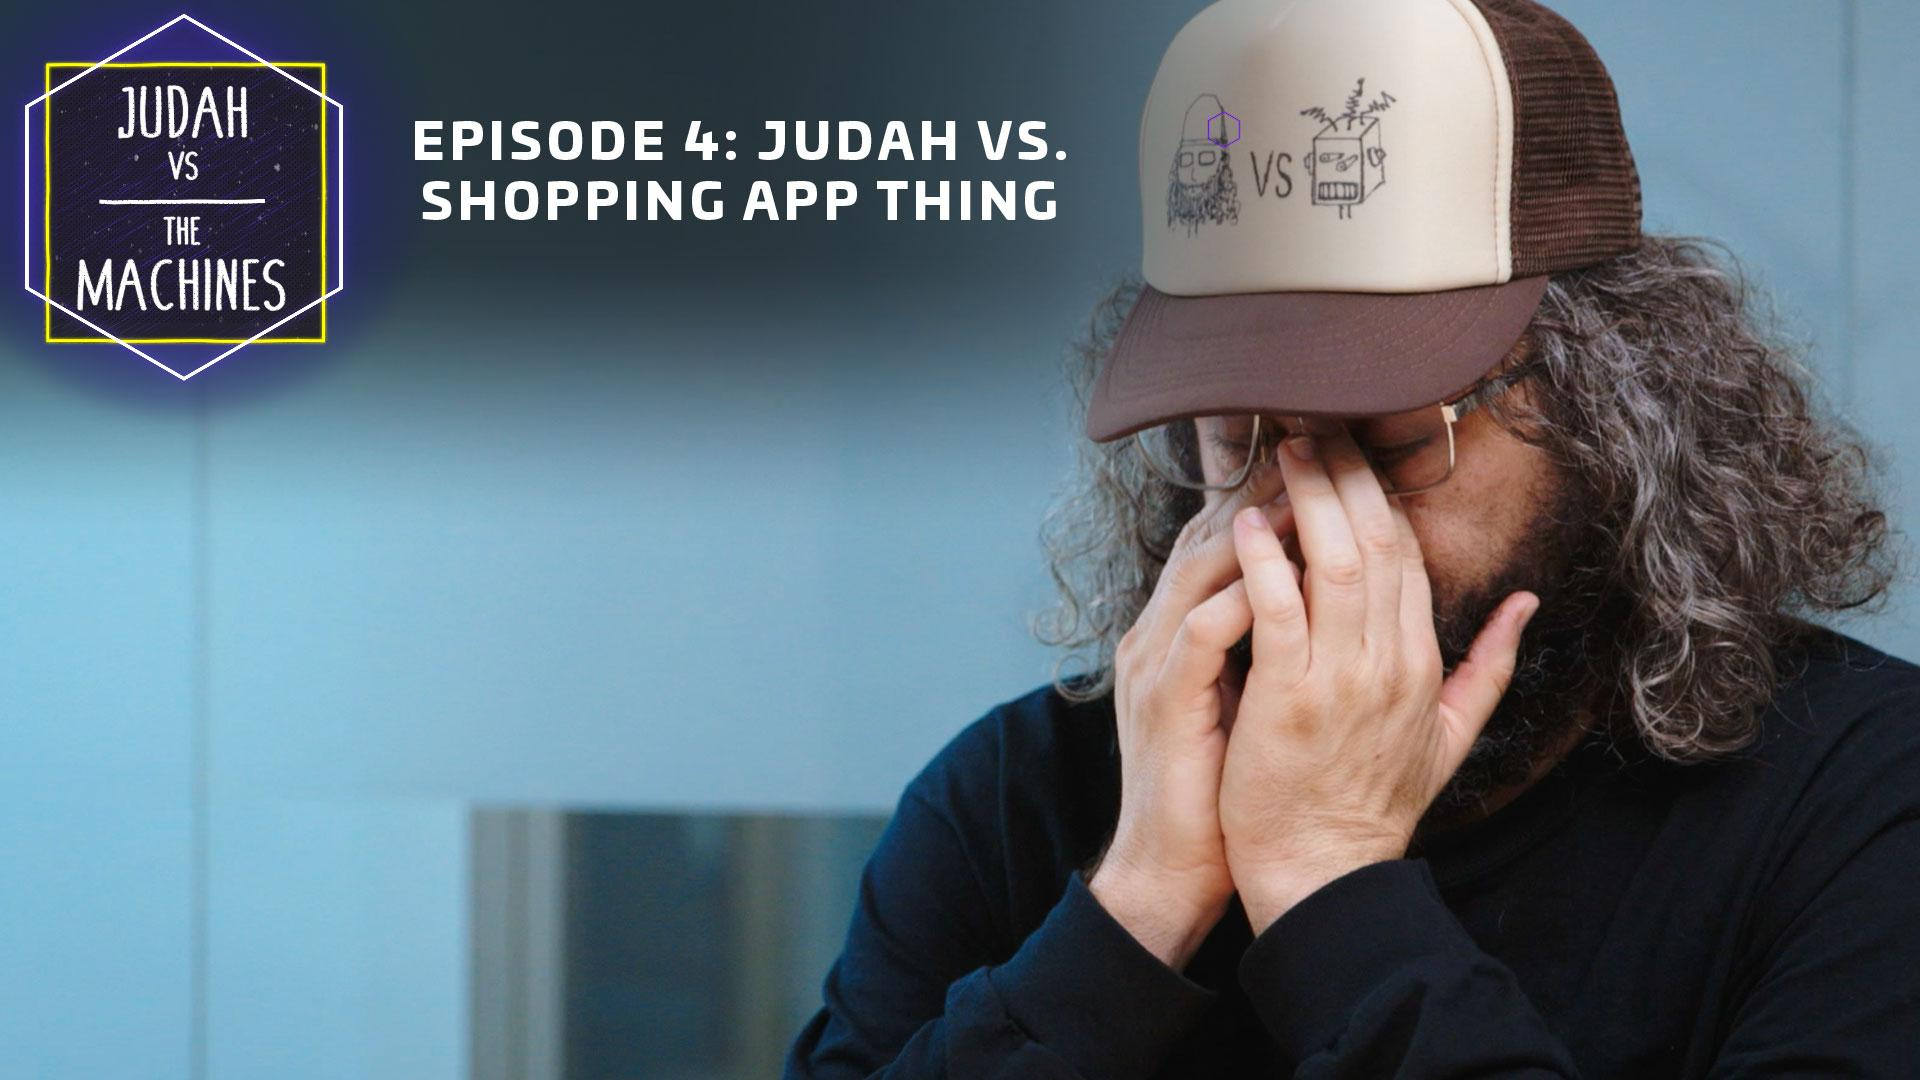 Judah vs. the Machines: For when you can't bring yourself to go shopping